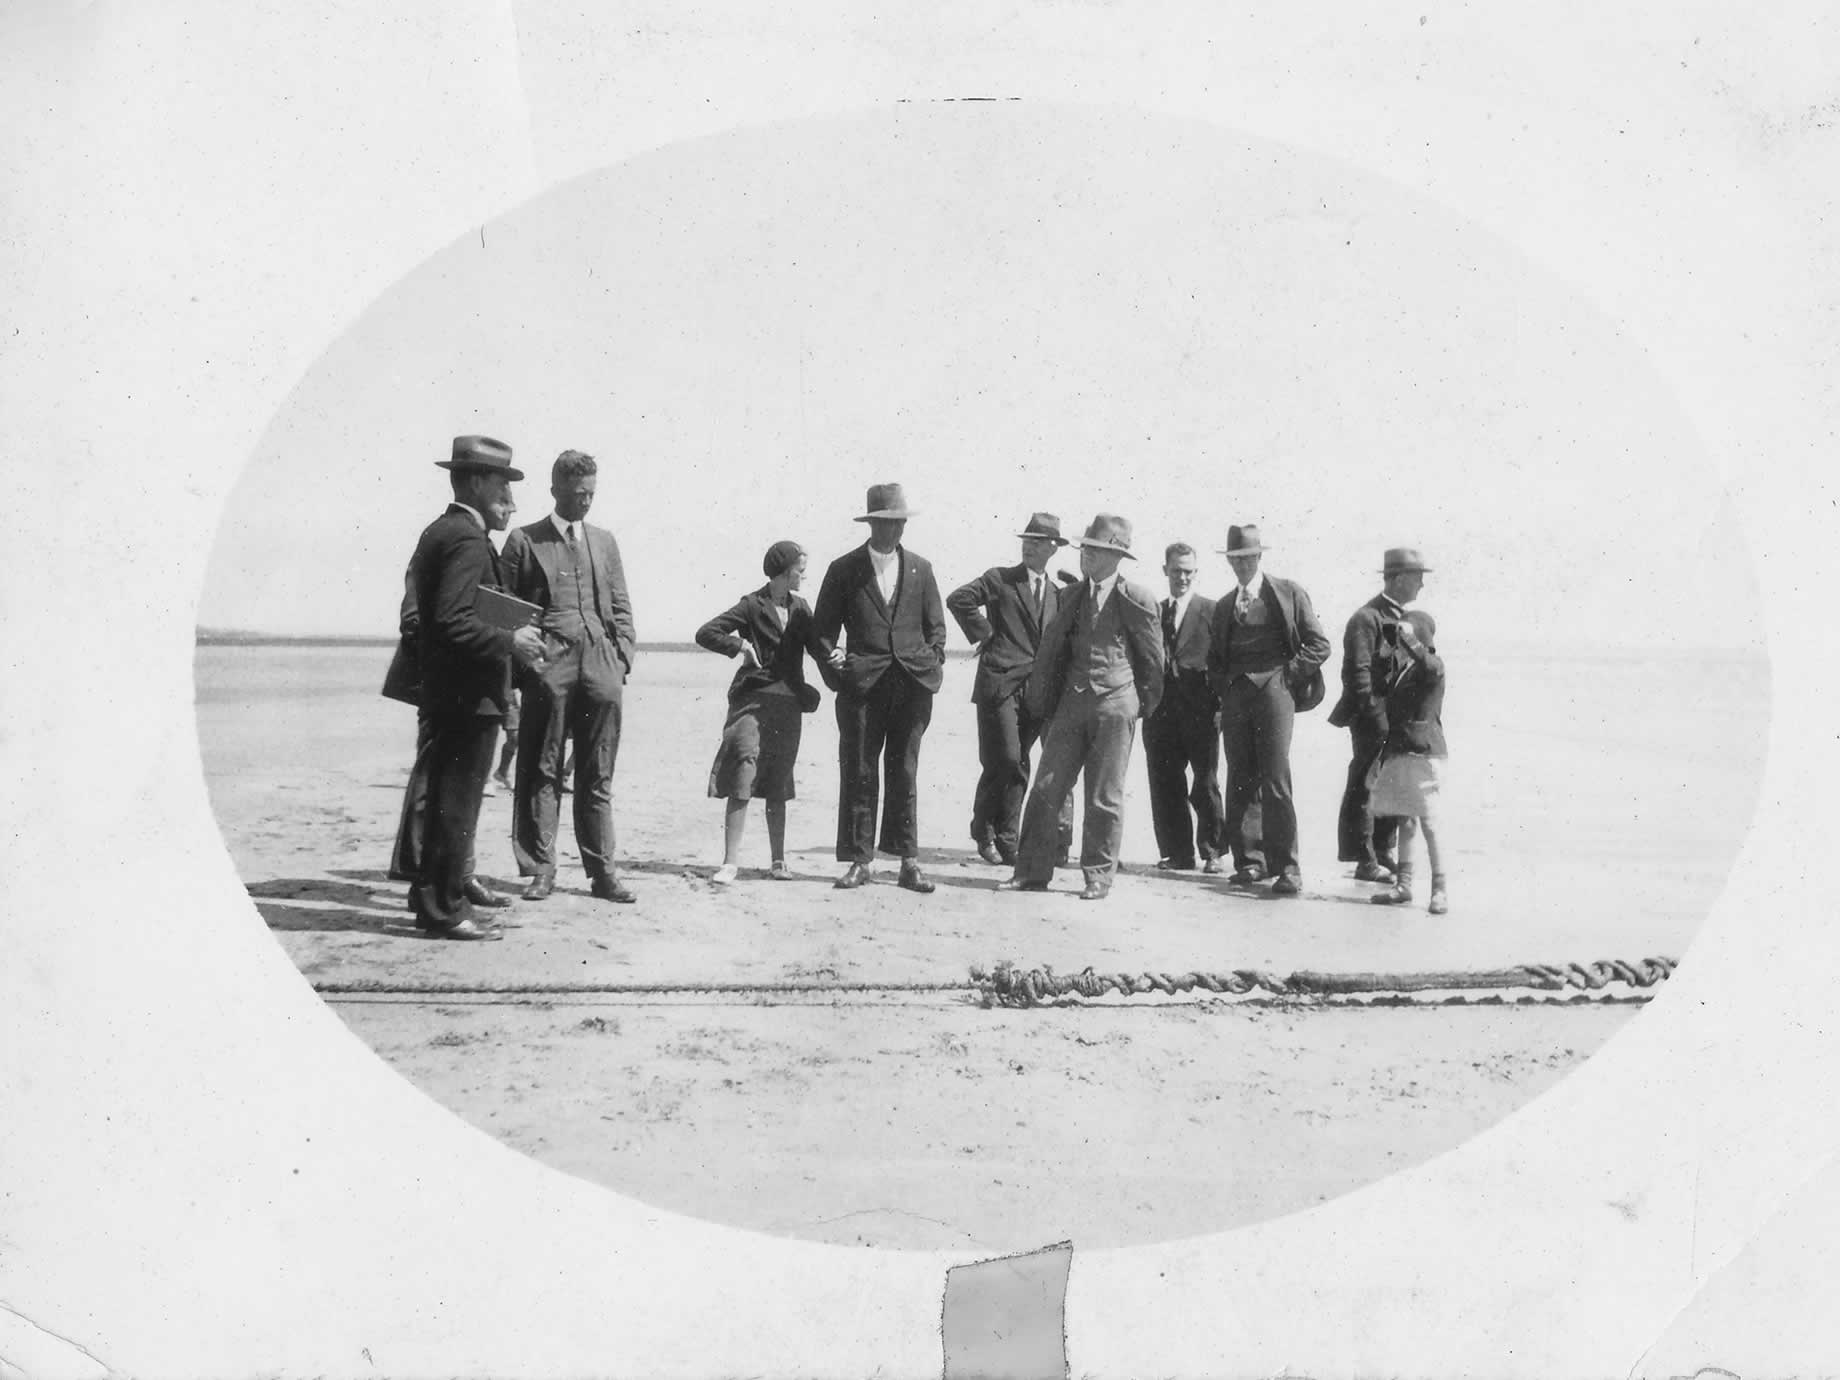 Onlookers viewing the original cable which came from Apollo Bay in Victoria to Stanley via King Island in 1936, with a young Meg in the crowd